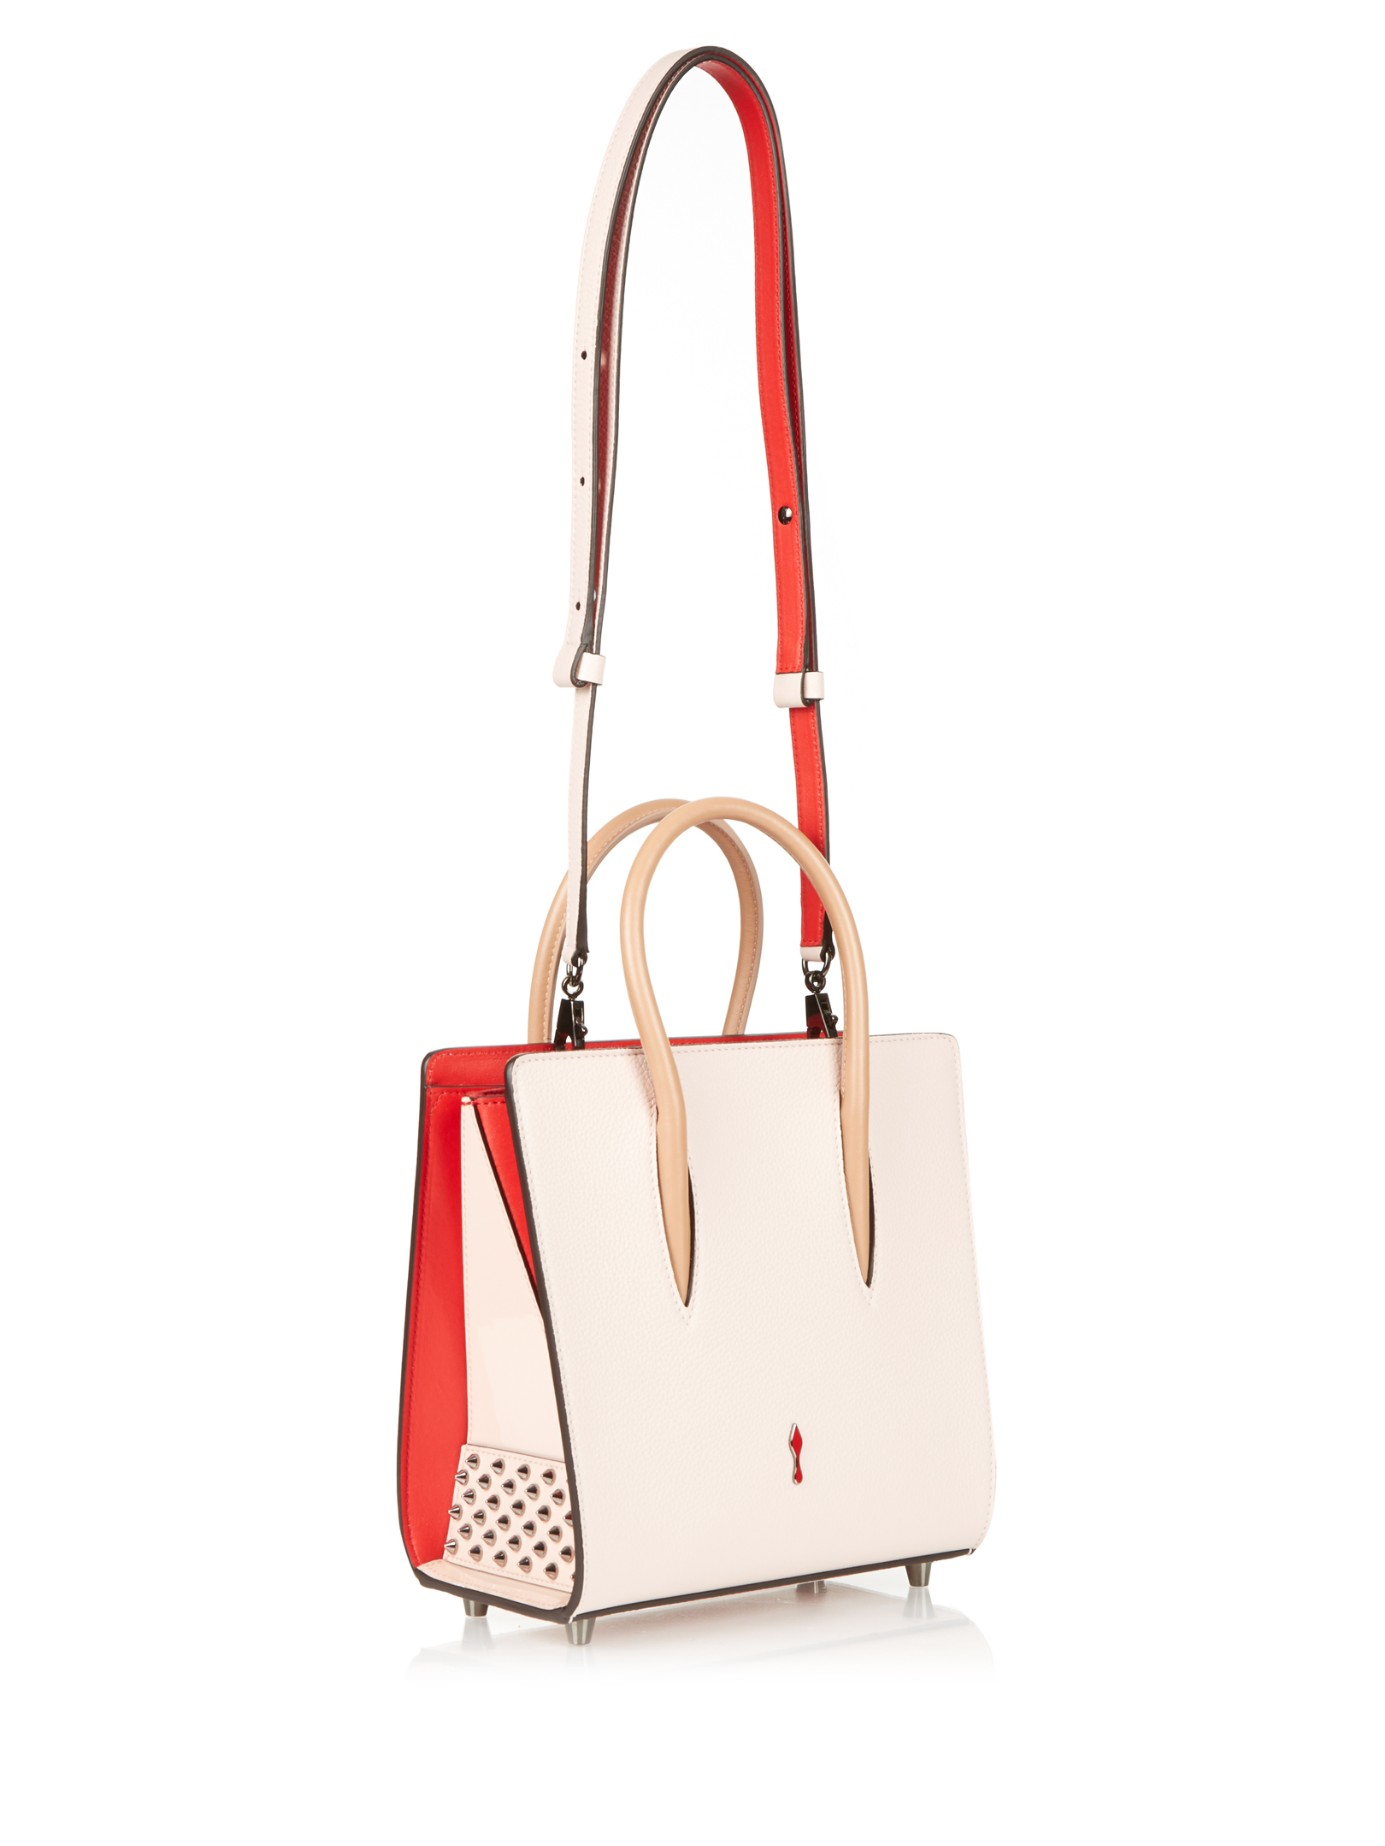 0f9d2055f3 Lyst - Christian Louboutin Paloma Small Leather Tote in Natural